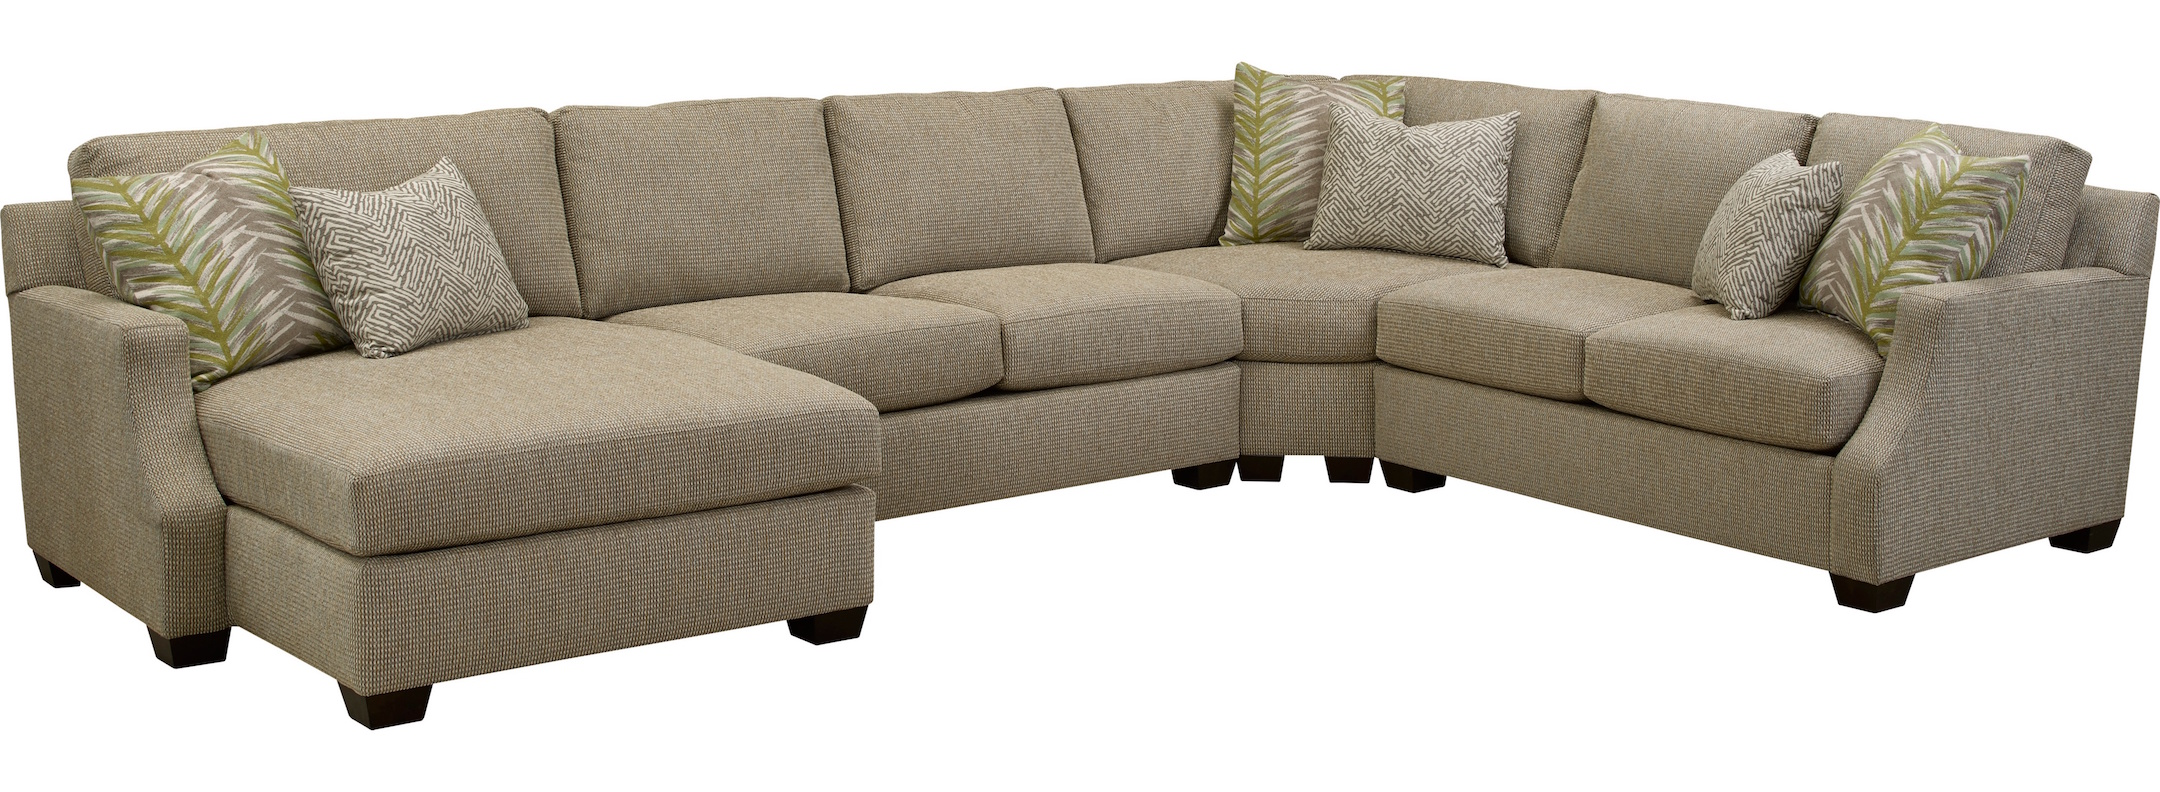 Chambers Large Sectional Sofa